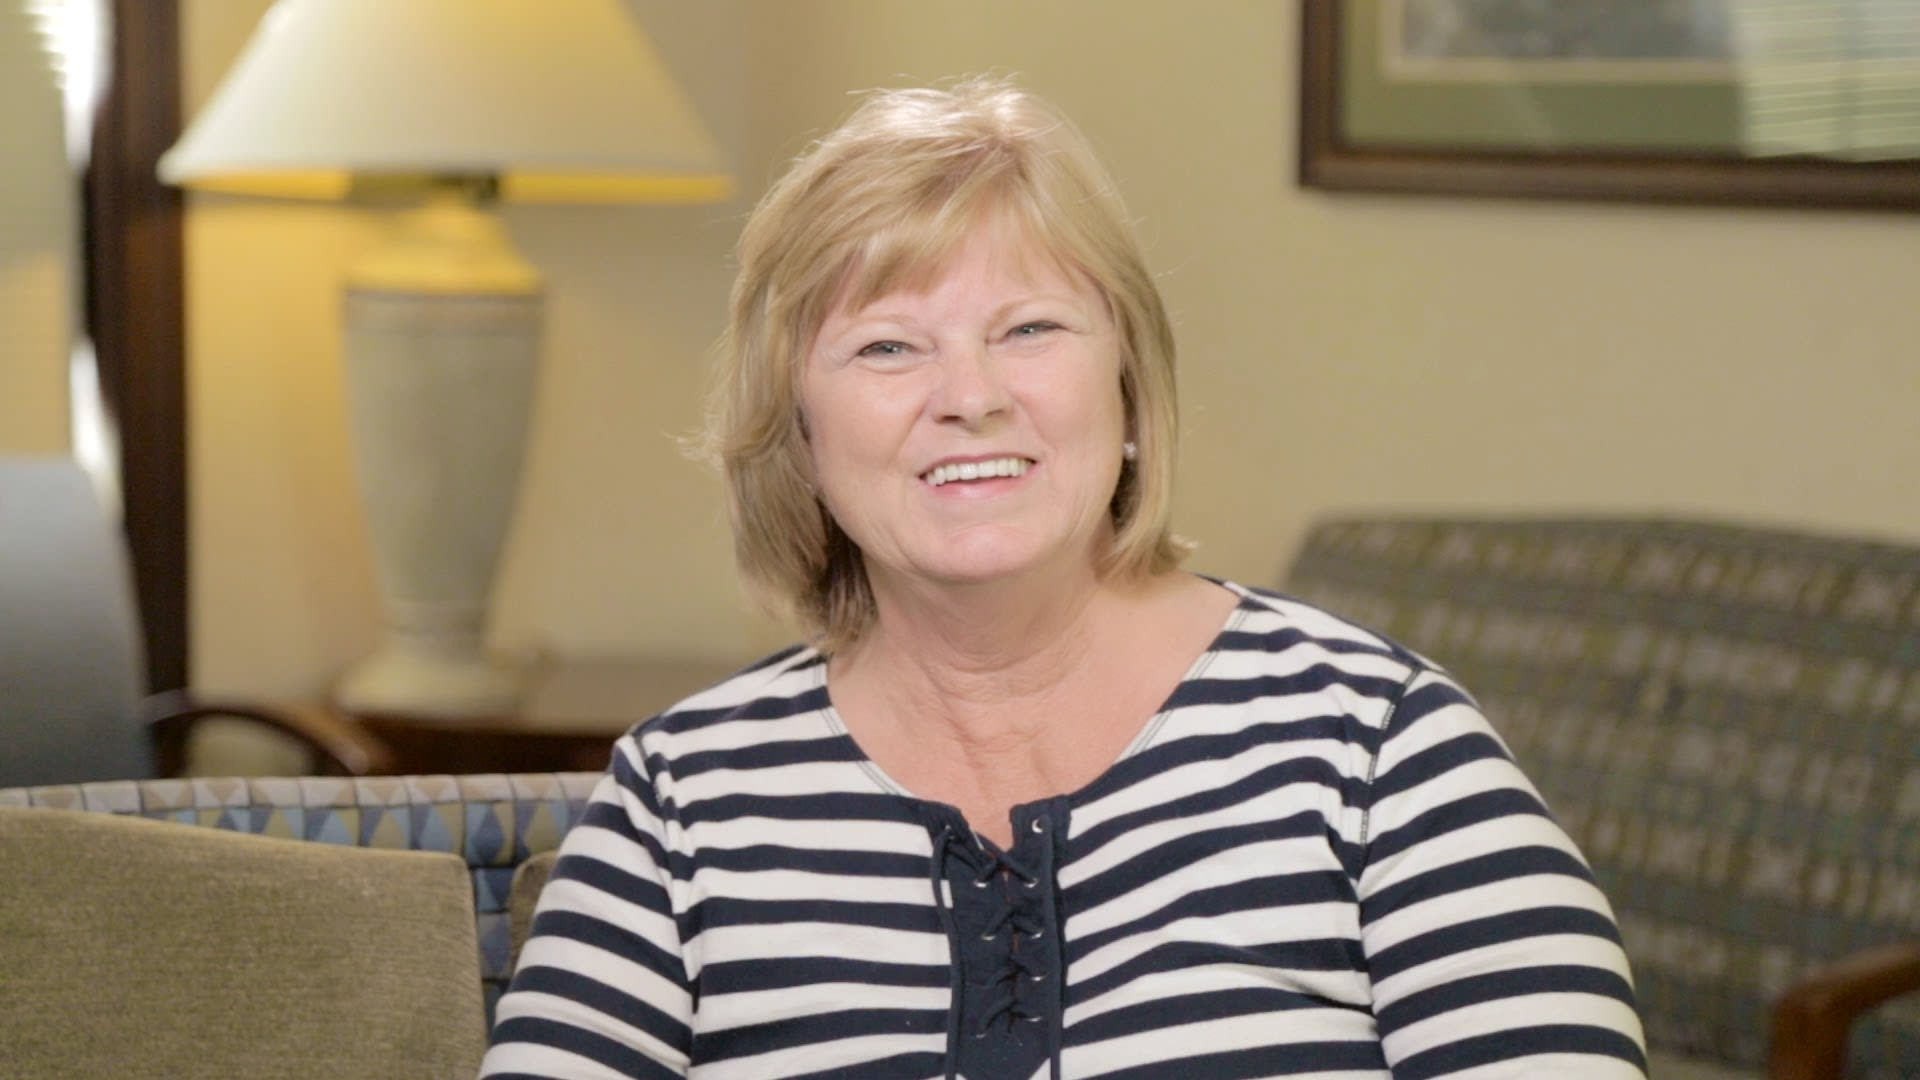 Kay Had a Bone Graft and Dental Implants Placed